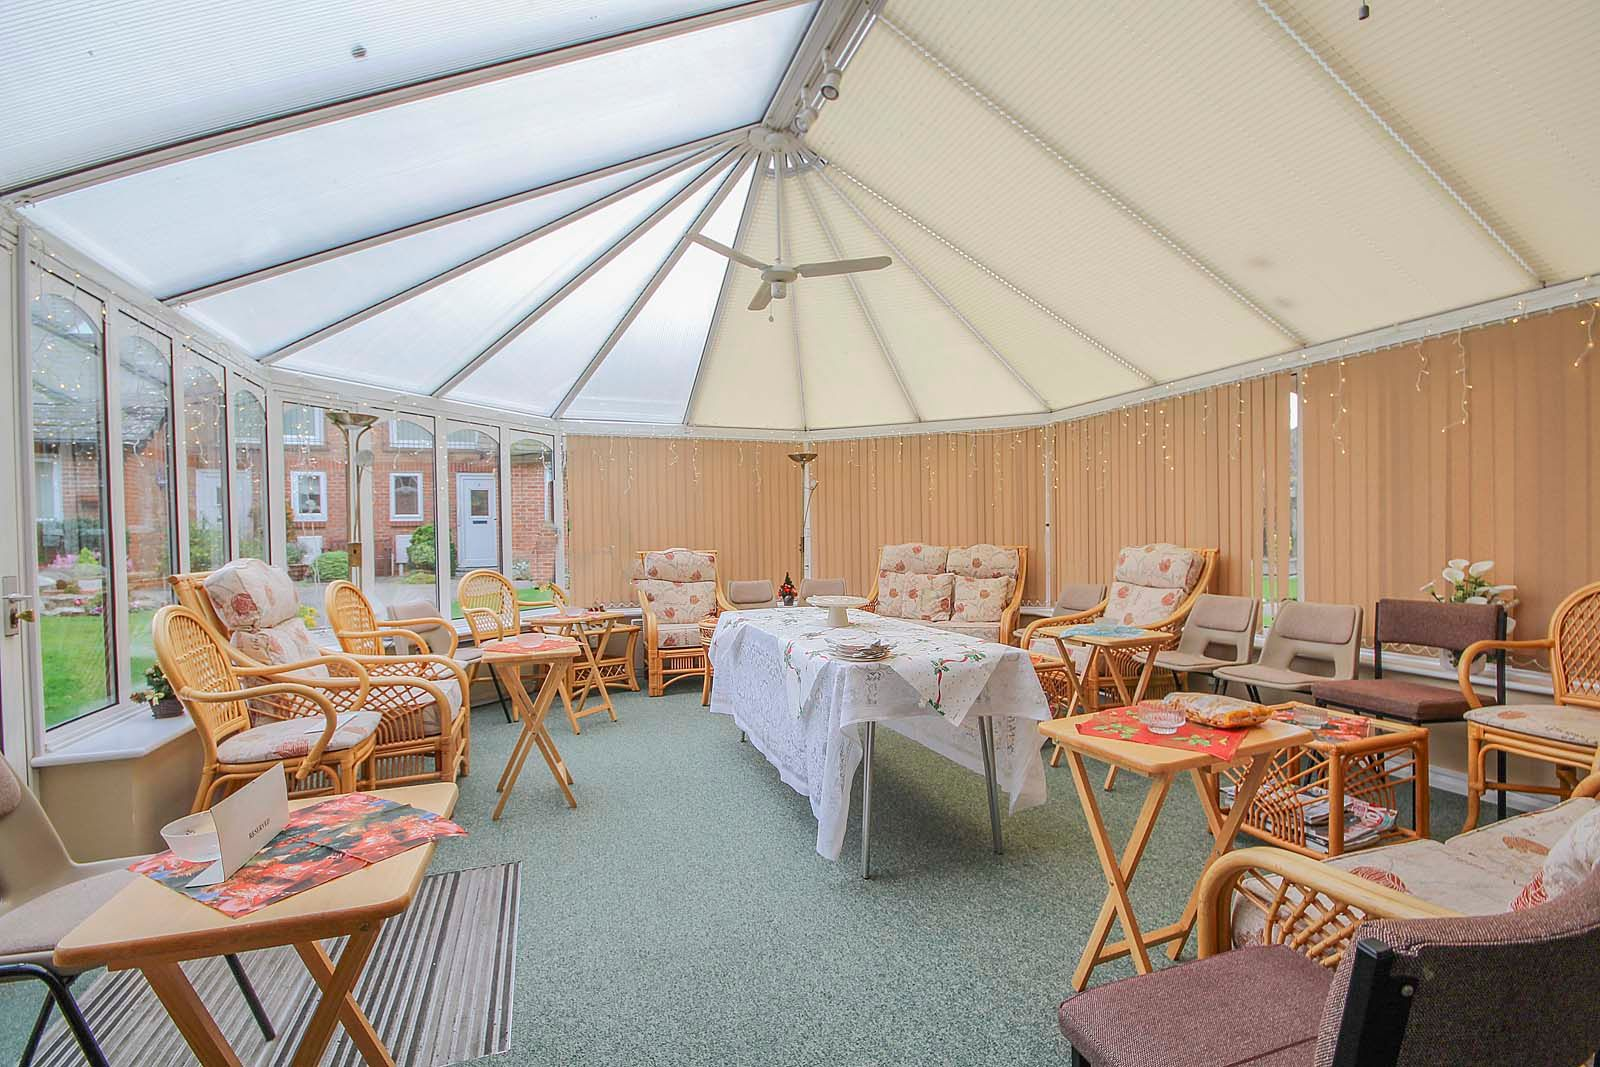 2 bed Apartment for sale in East Preston - Communal conservatory (Property Image 3)